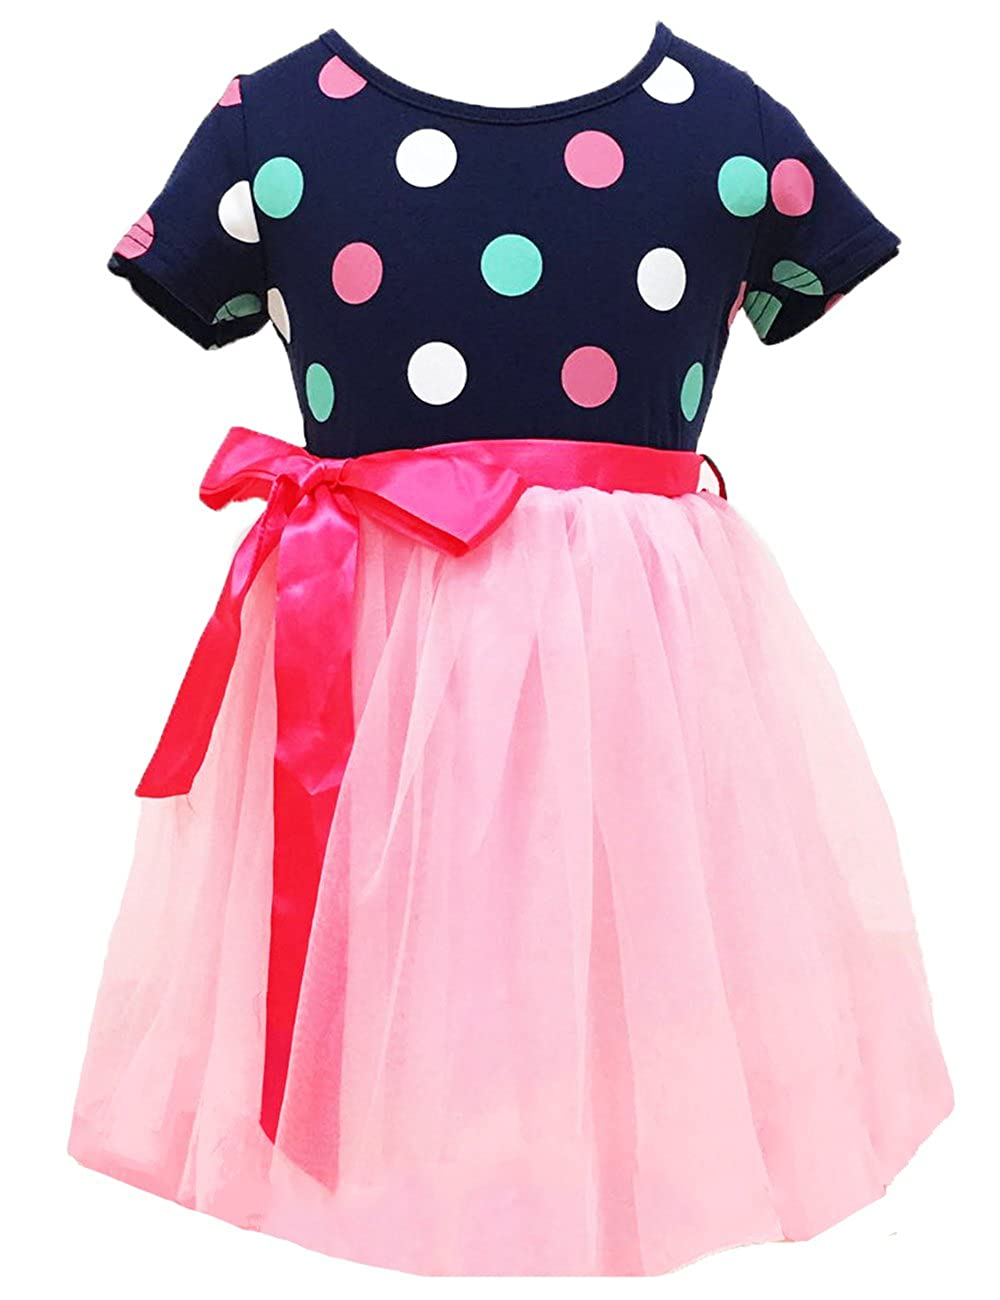 ba84aad06 Amazon.com  Little Girls Tutu Dresses Toddler Polka Dots Dress Pink ...